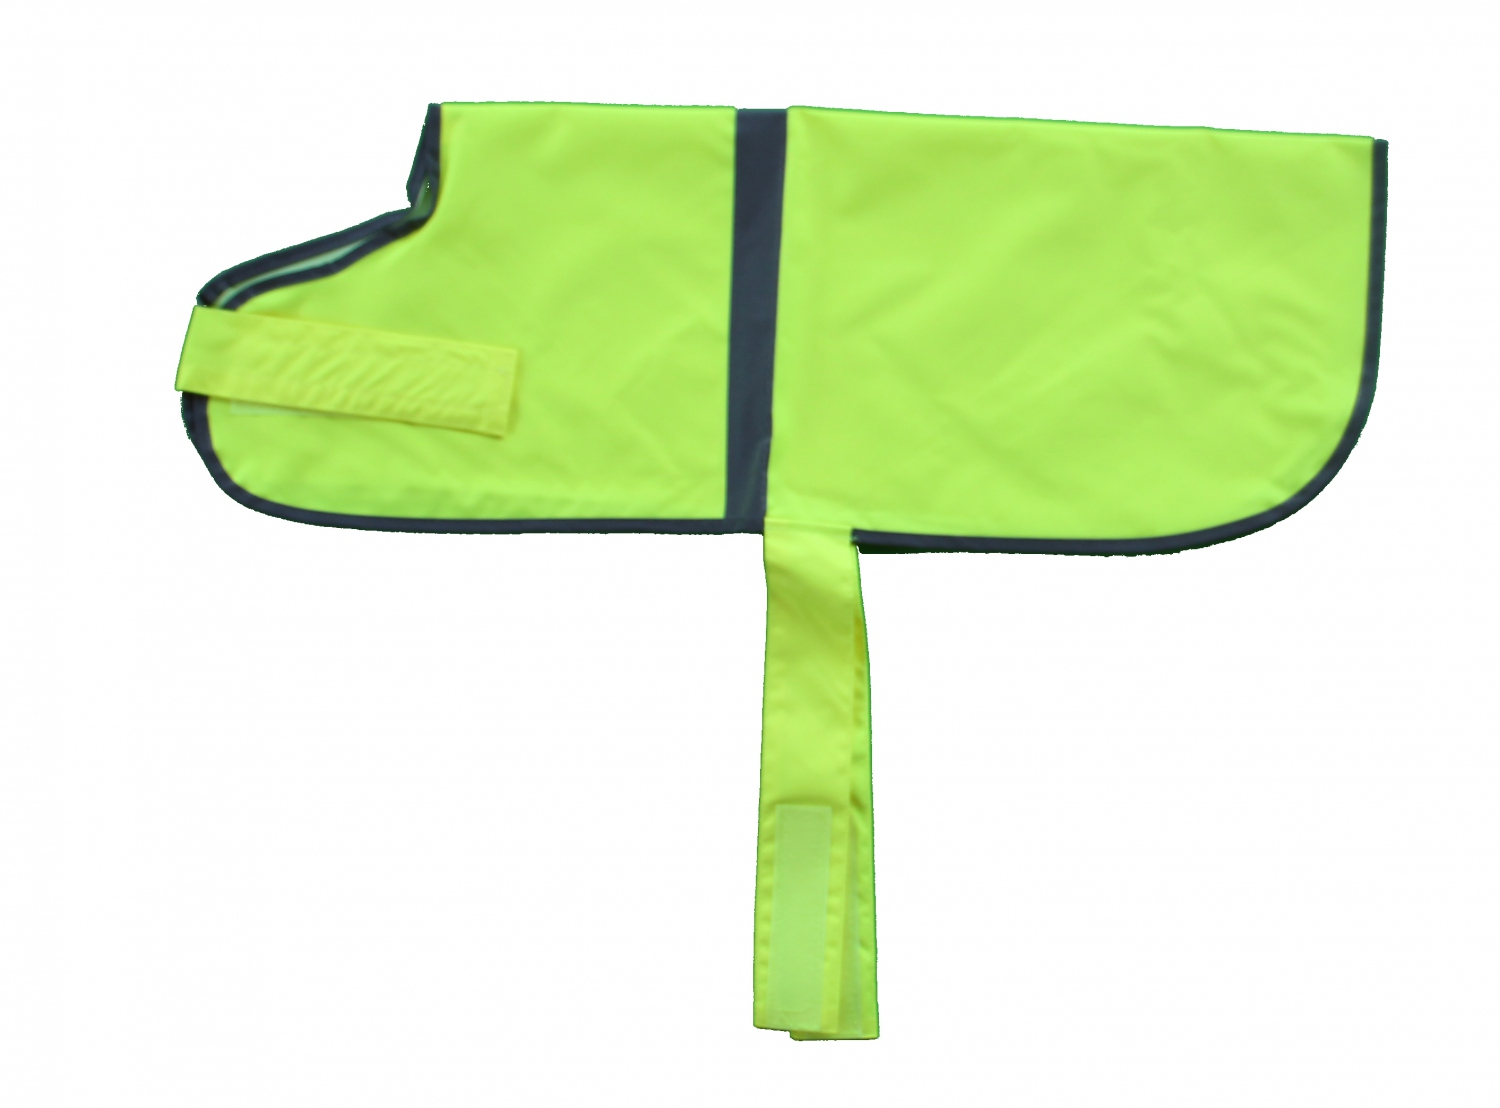 gilet jaune fluo pour chien ev089 ebay. Black Bedroom Furniture Sets. Home Design Ideas